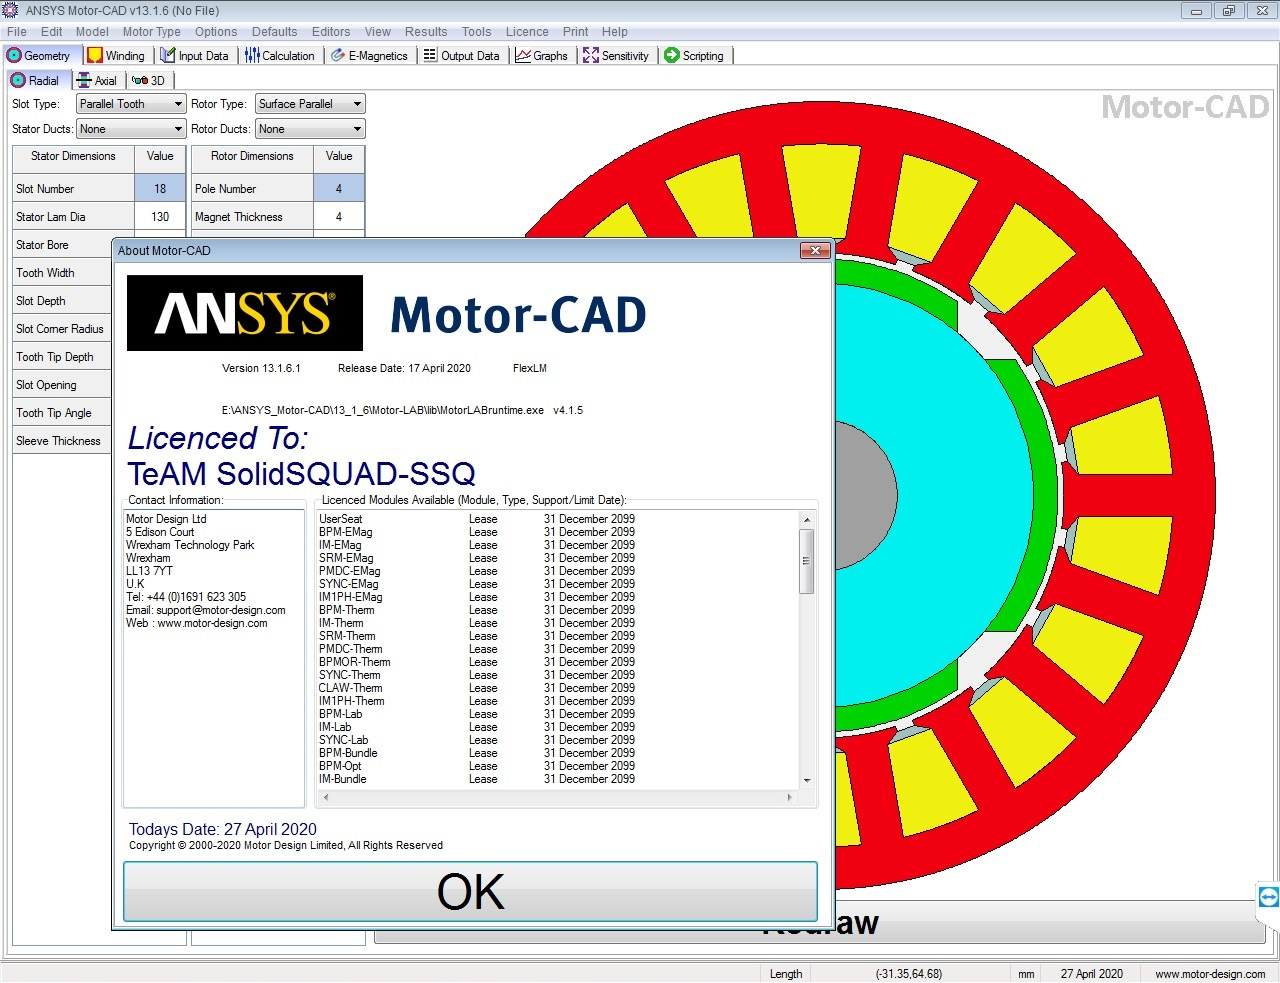 Working with ANSYS Motor-CAD v13.1.6 full license